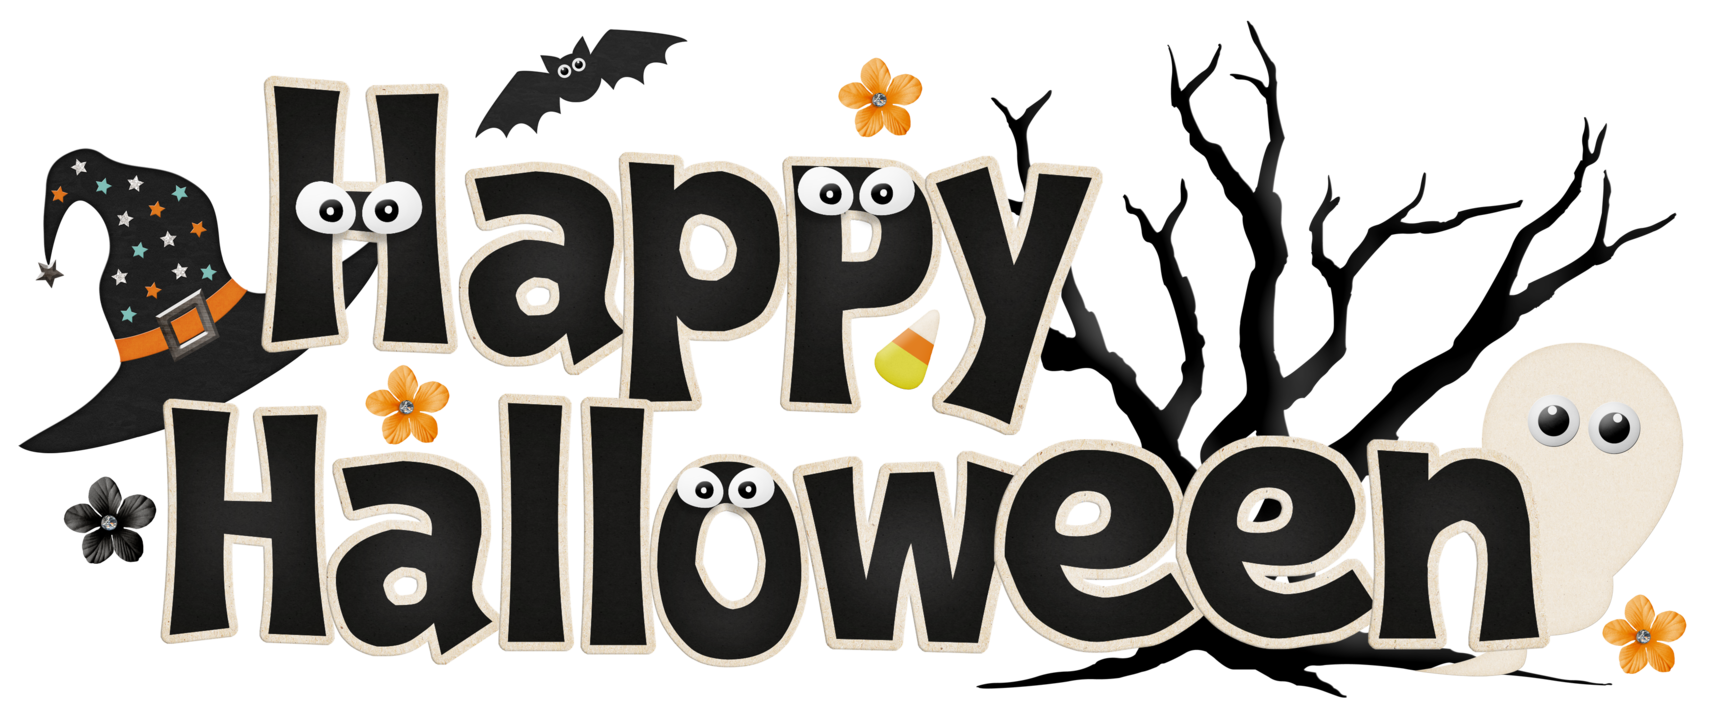 Cute happy halloween clipart banner freeuse library 28+ Collection of Cute Happy Halloween Clipart Banner | High quality ... banner freeuse library